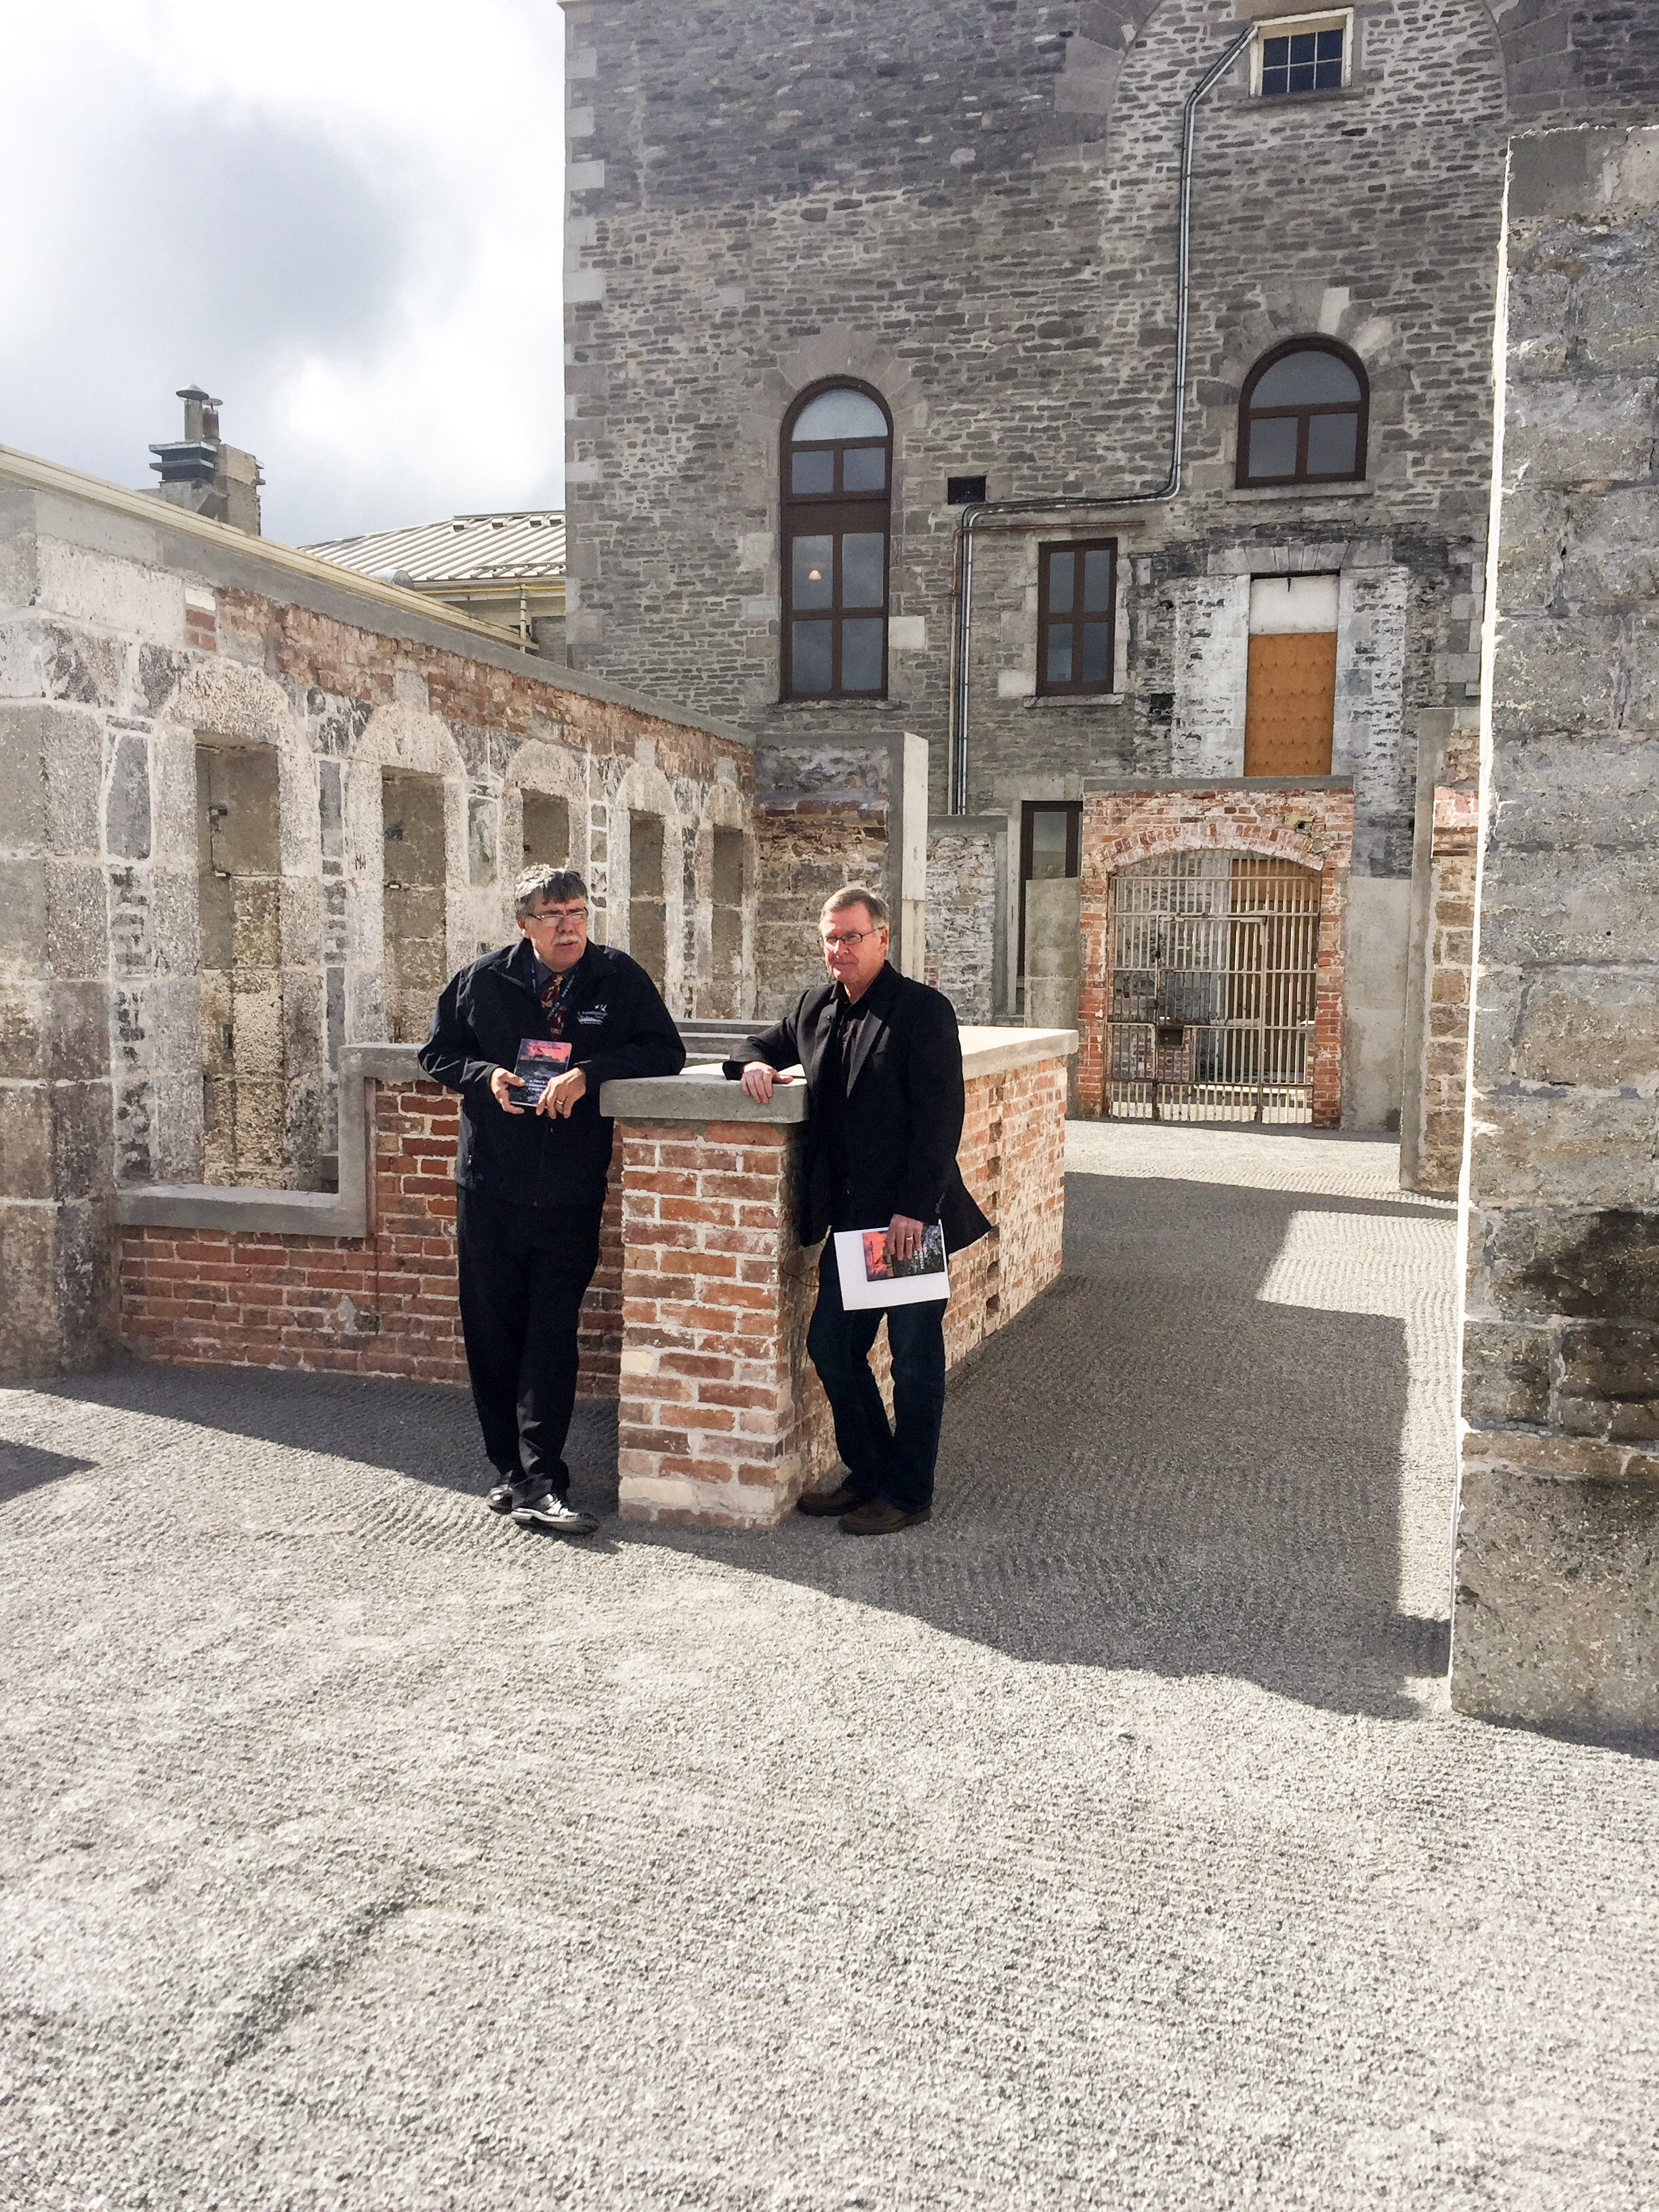 Warden J. Murray Jones (at left) with Ed Arnold at the old County Jail site (photo by Scott Arnold)